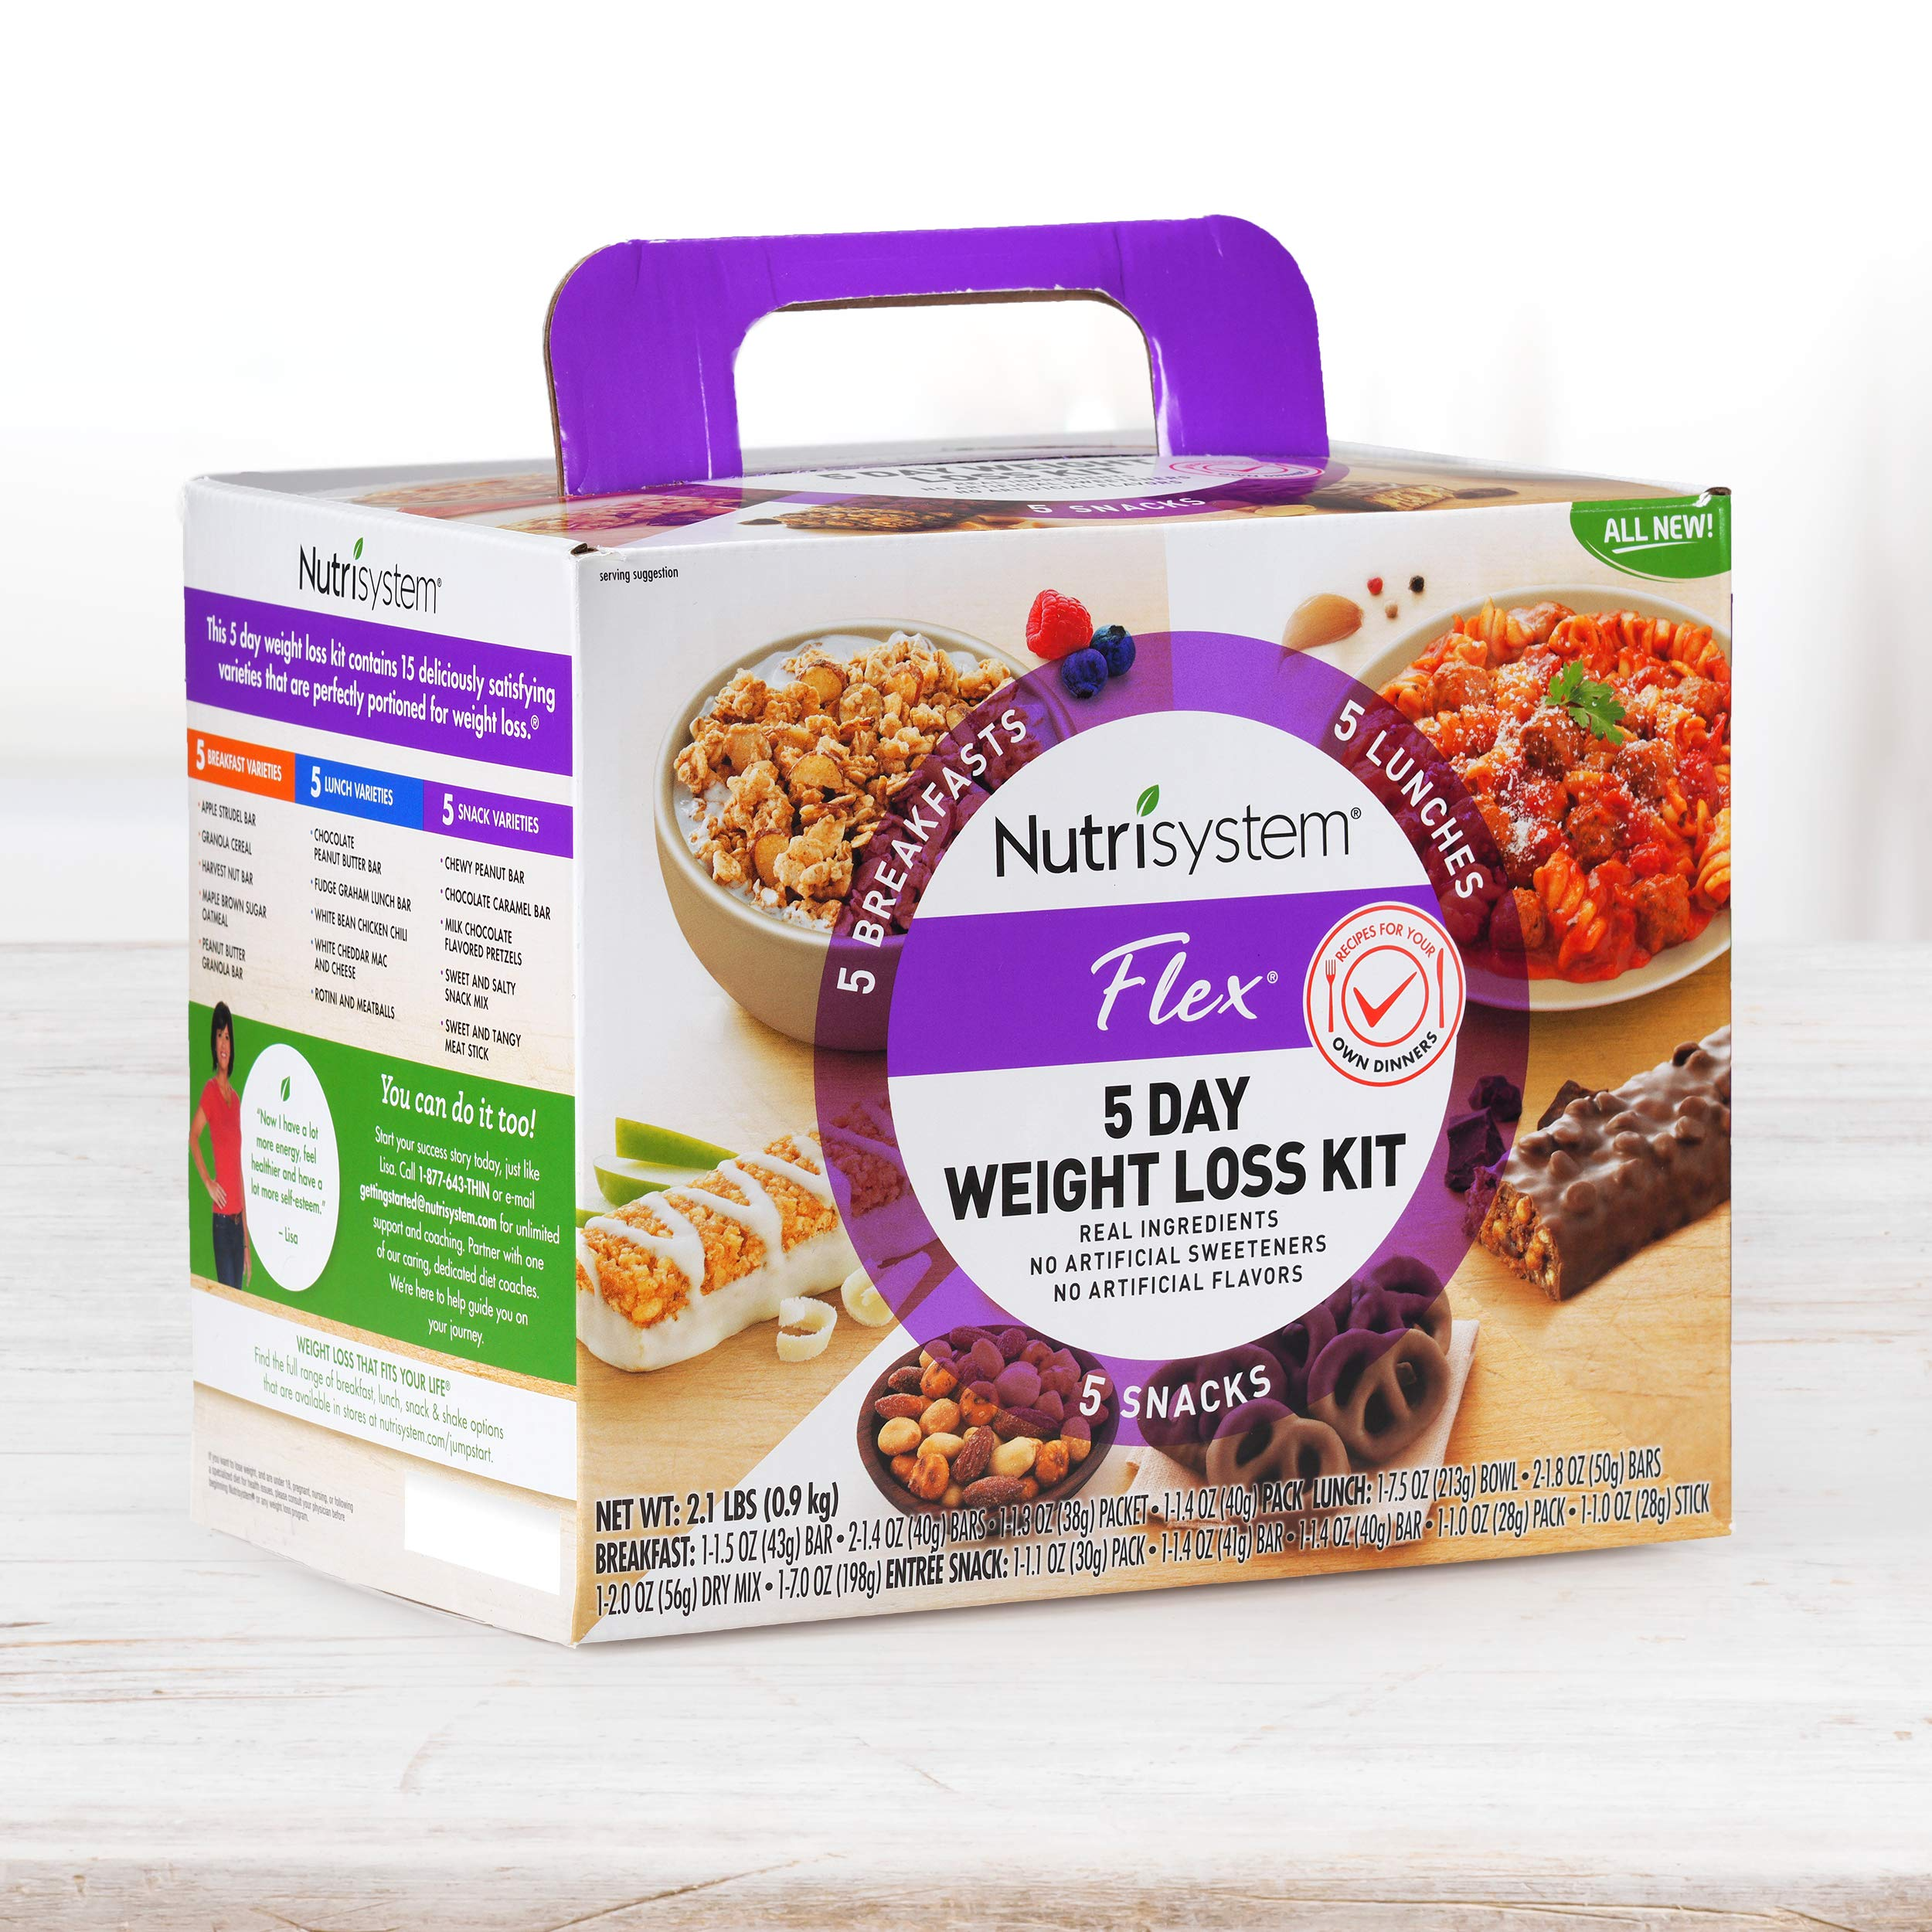 Nutrisystem® Flex 5 Day Weight Loss Kit